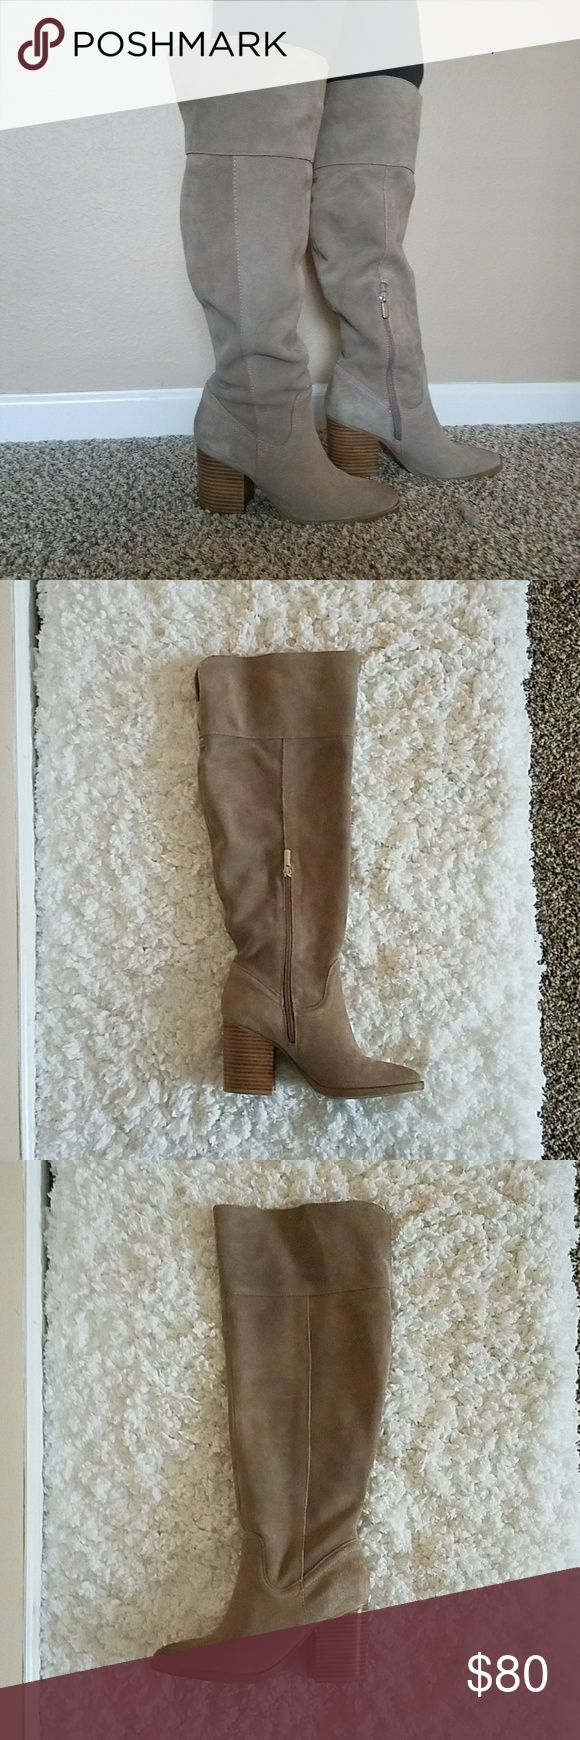 STEVE MADDEN SUEDE OVER KNEE BOOT TAUPE BEIGE  7.5 Block heel over the knee suede boots Steve Madden Shoes Over the Knee Boots